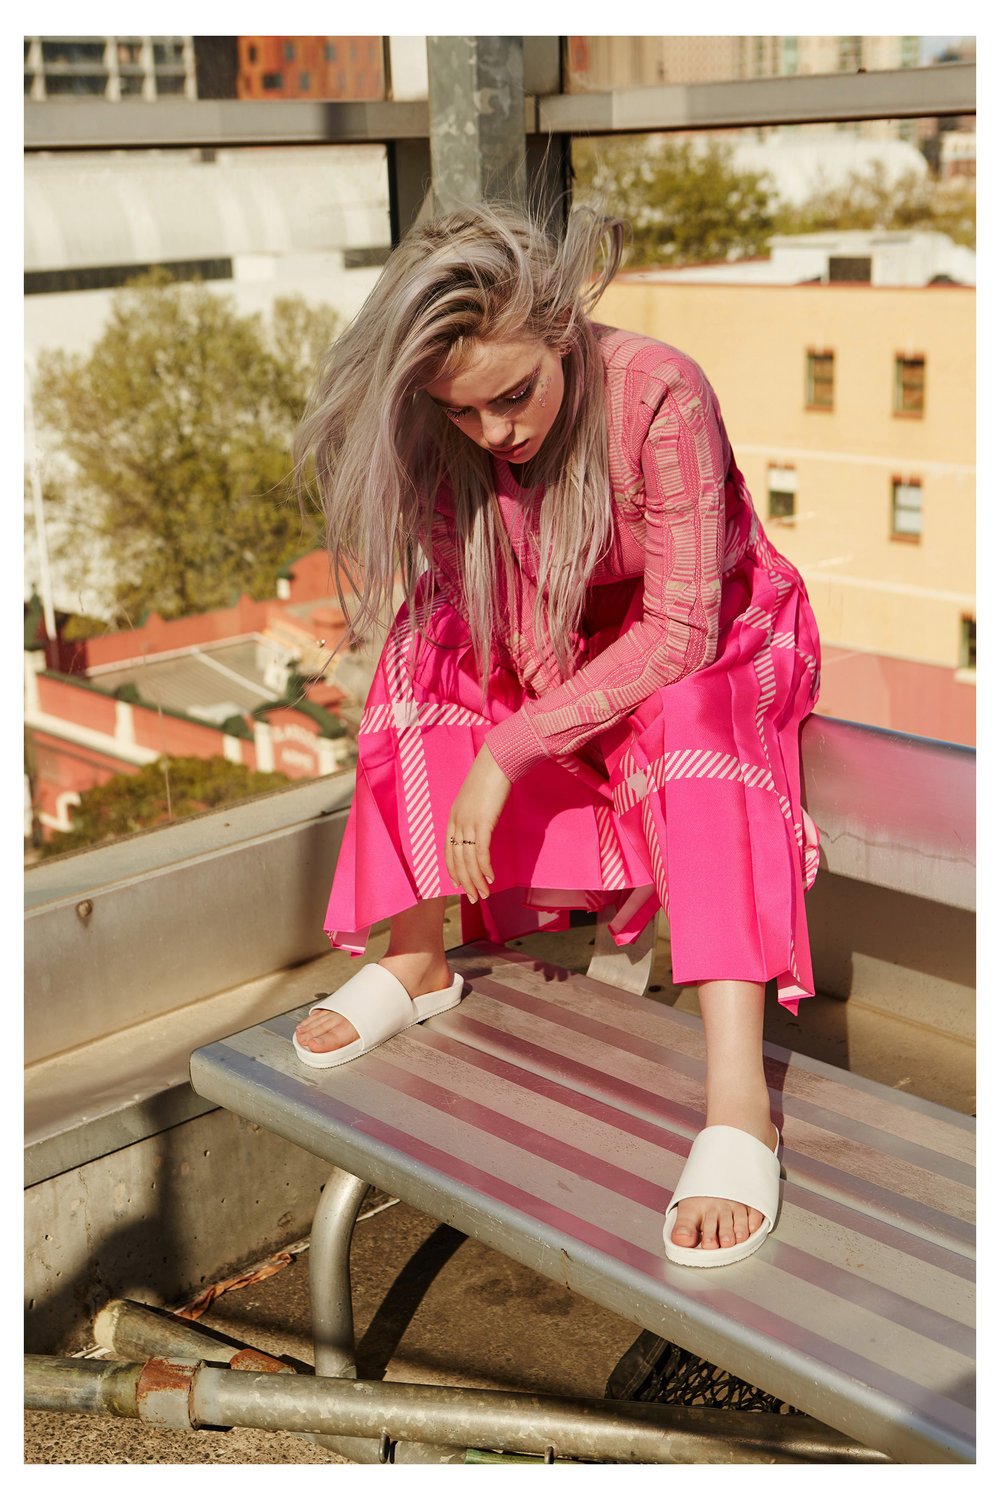 Billie Eilish Max Doyle InStyle_7.jpg